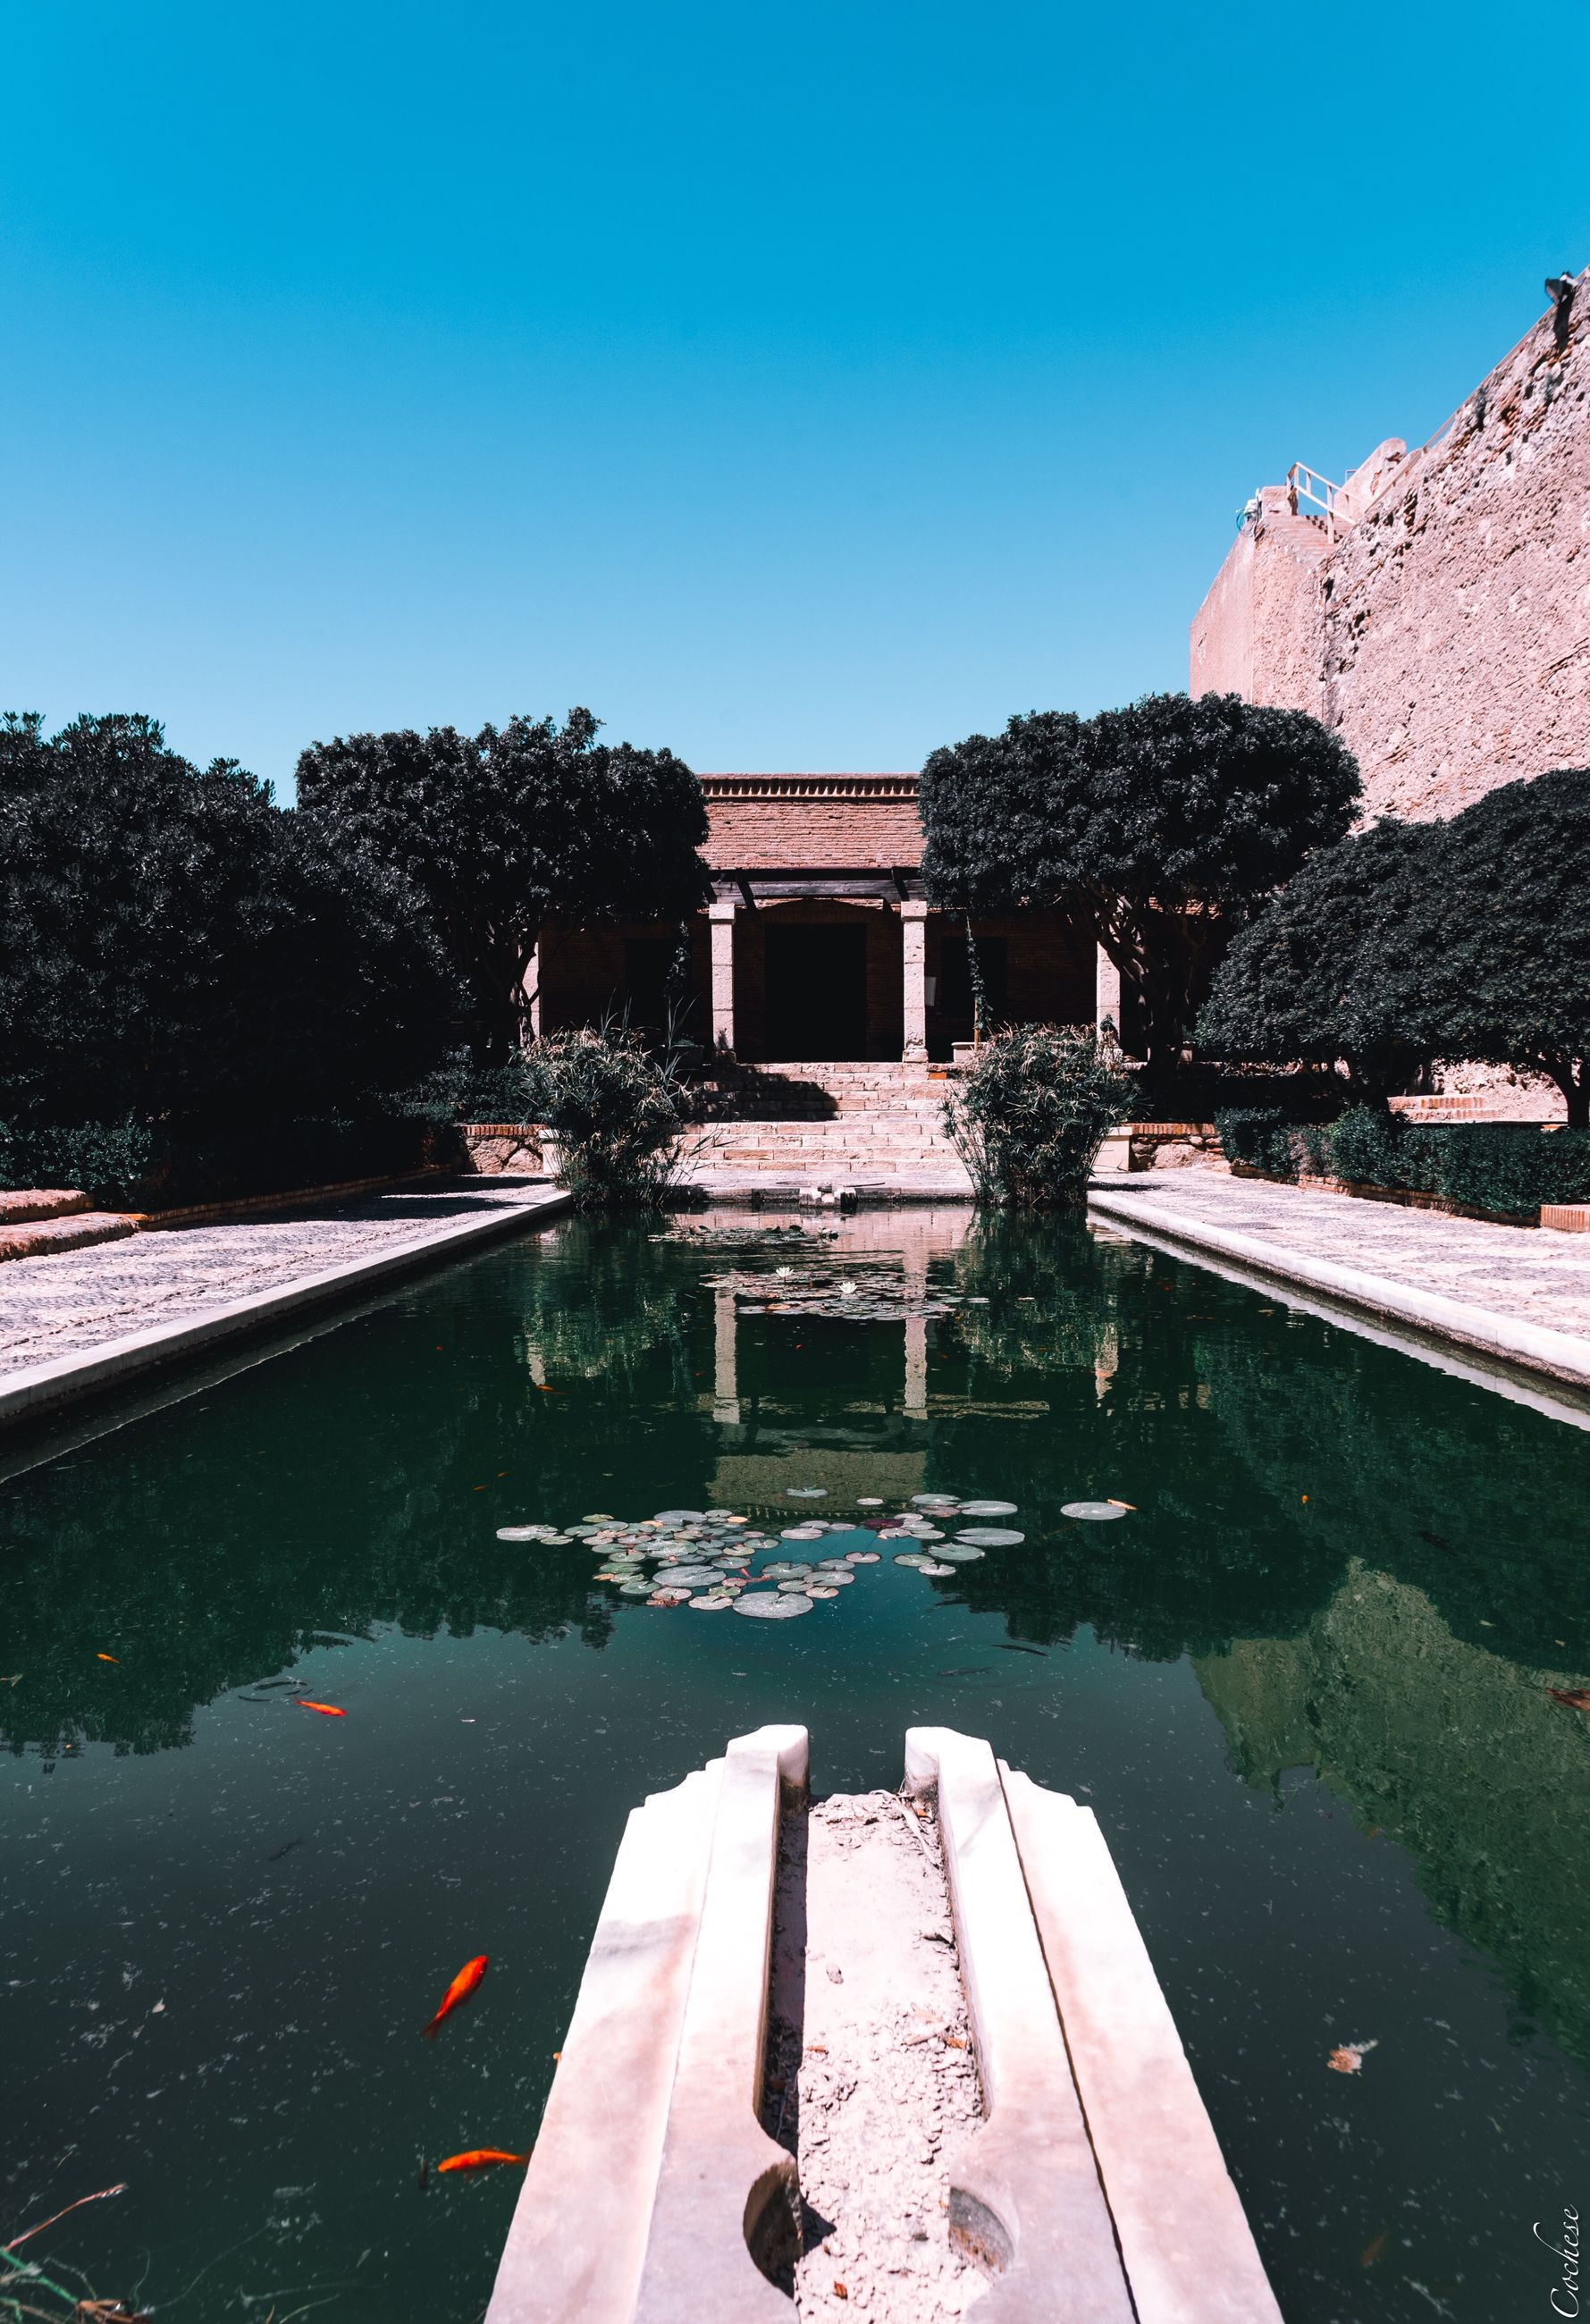 water, architecture, reflection, built structure, sky, nature, tree, lake, day, plant, clear sky, building exterior, no people, pool, travel destinations, outdoors, the past, history, swimming pool, reflecting pool